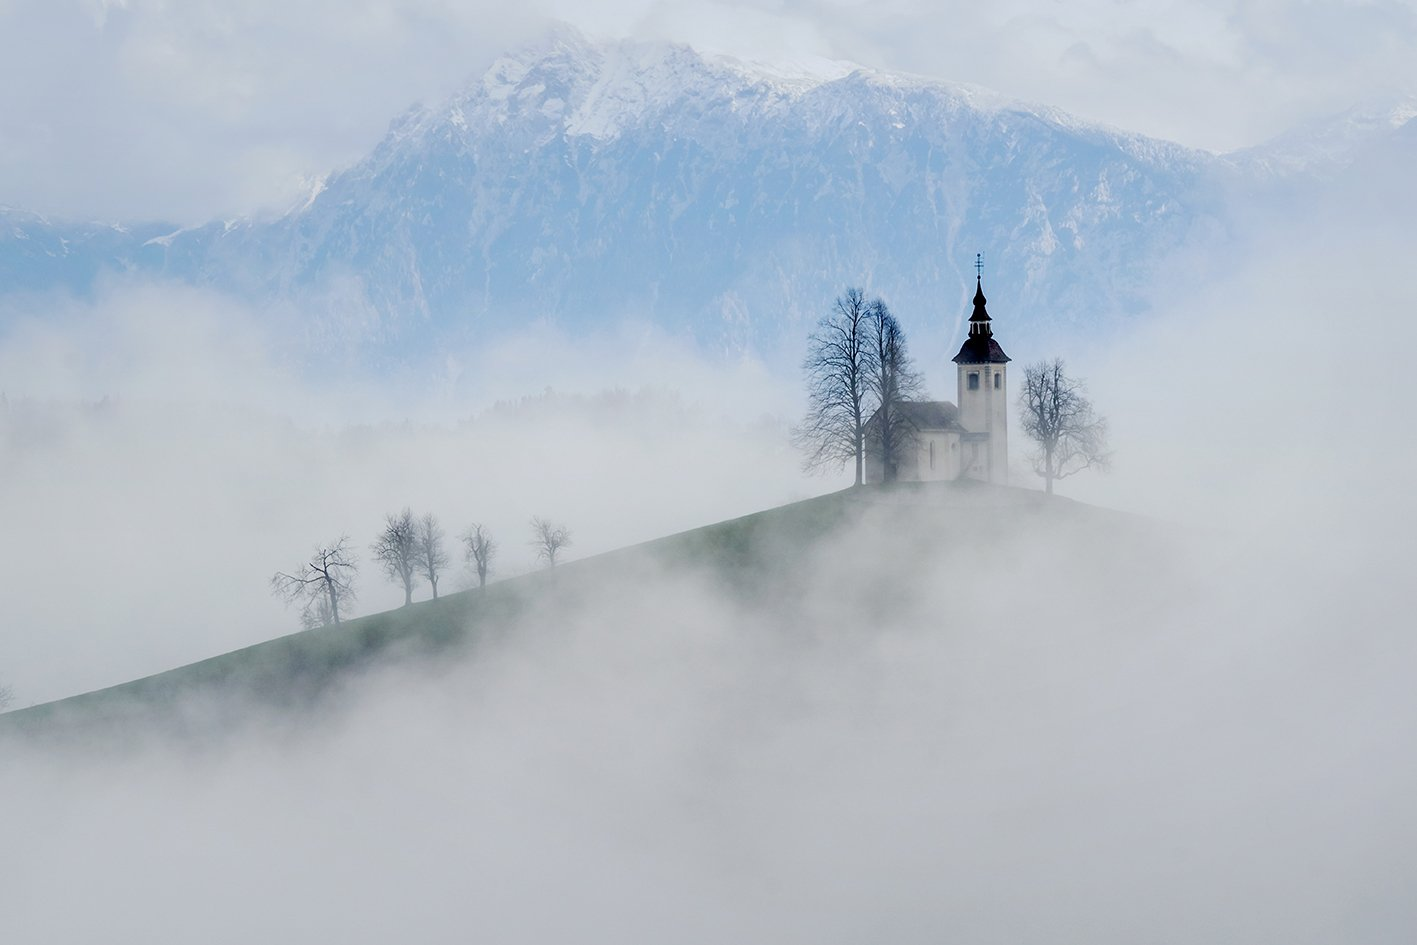 словения, slovenia, church of st thomas slovenia, church, пейзажи словении, храмы словении, slovenia landscape, slovenia landscape photography, Татьяна Ефименко